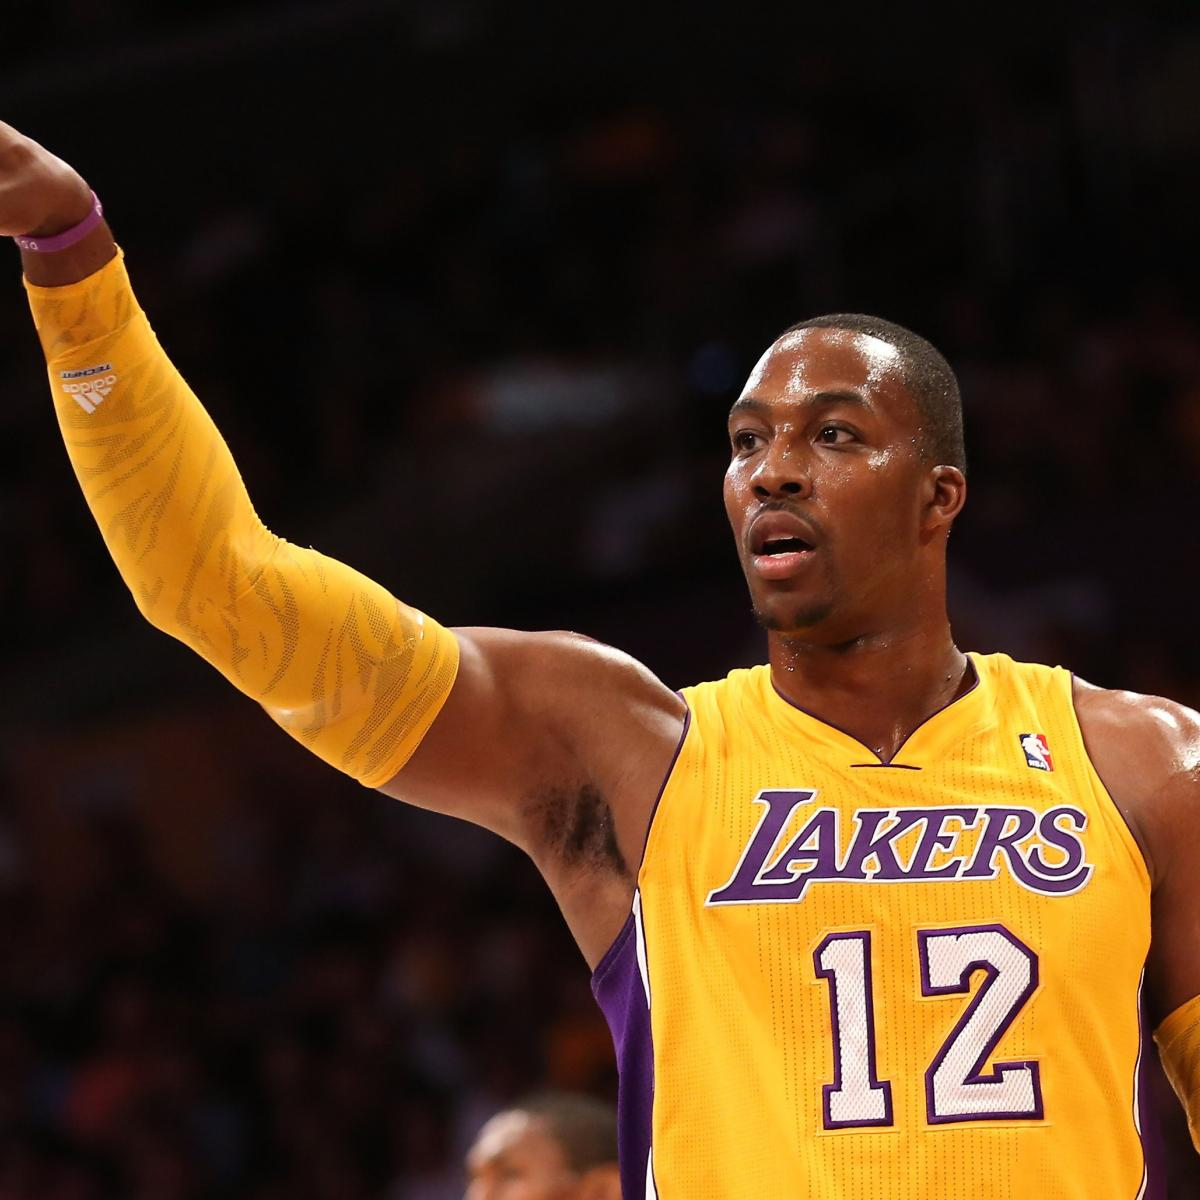 Dwight Howard: Big Man's Presence In Paint Will Carry